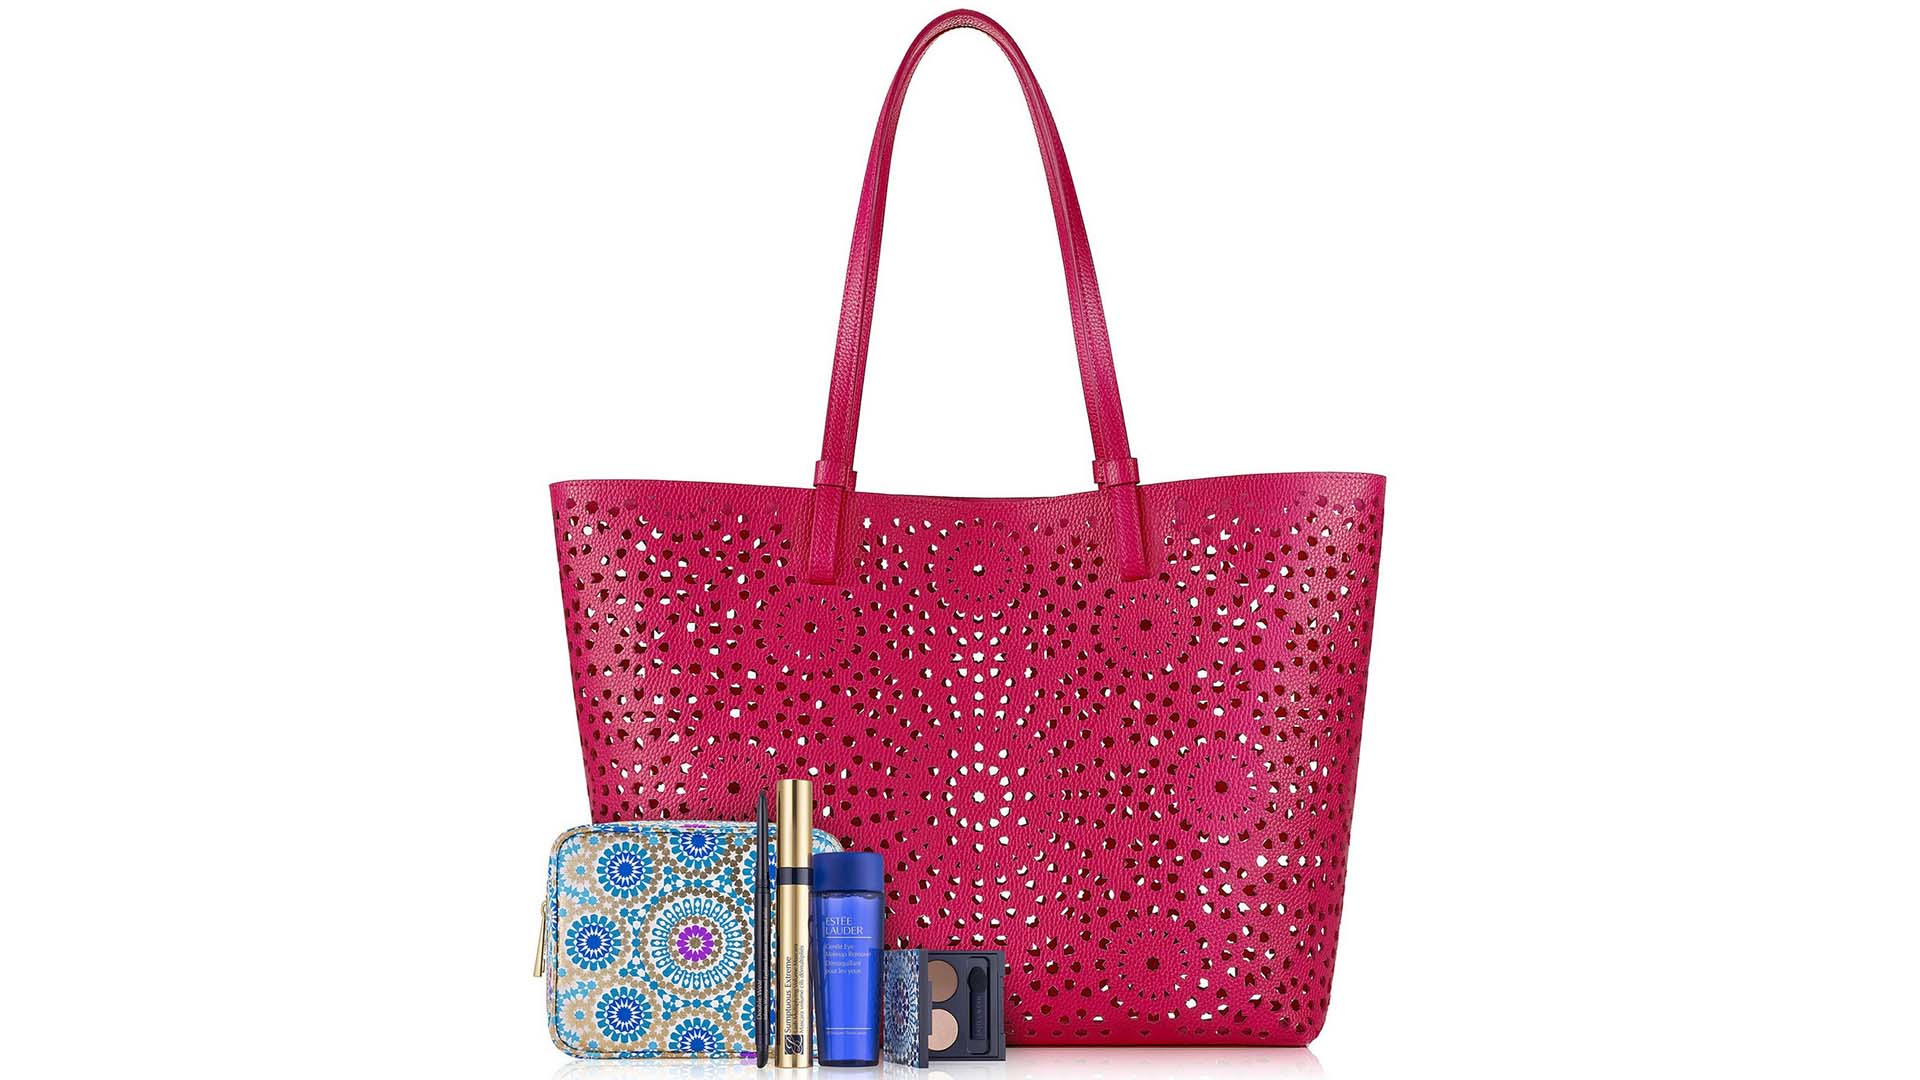 Estée Lauder 6 Pieses Gift Is One Of The Best Macy's Deals To Mother's Day